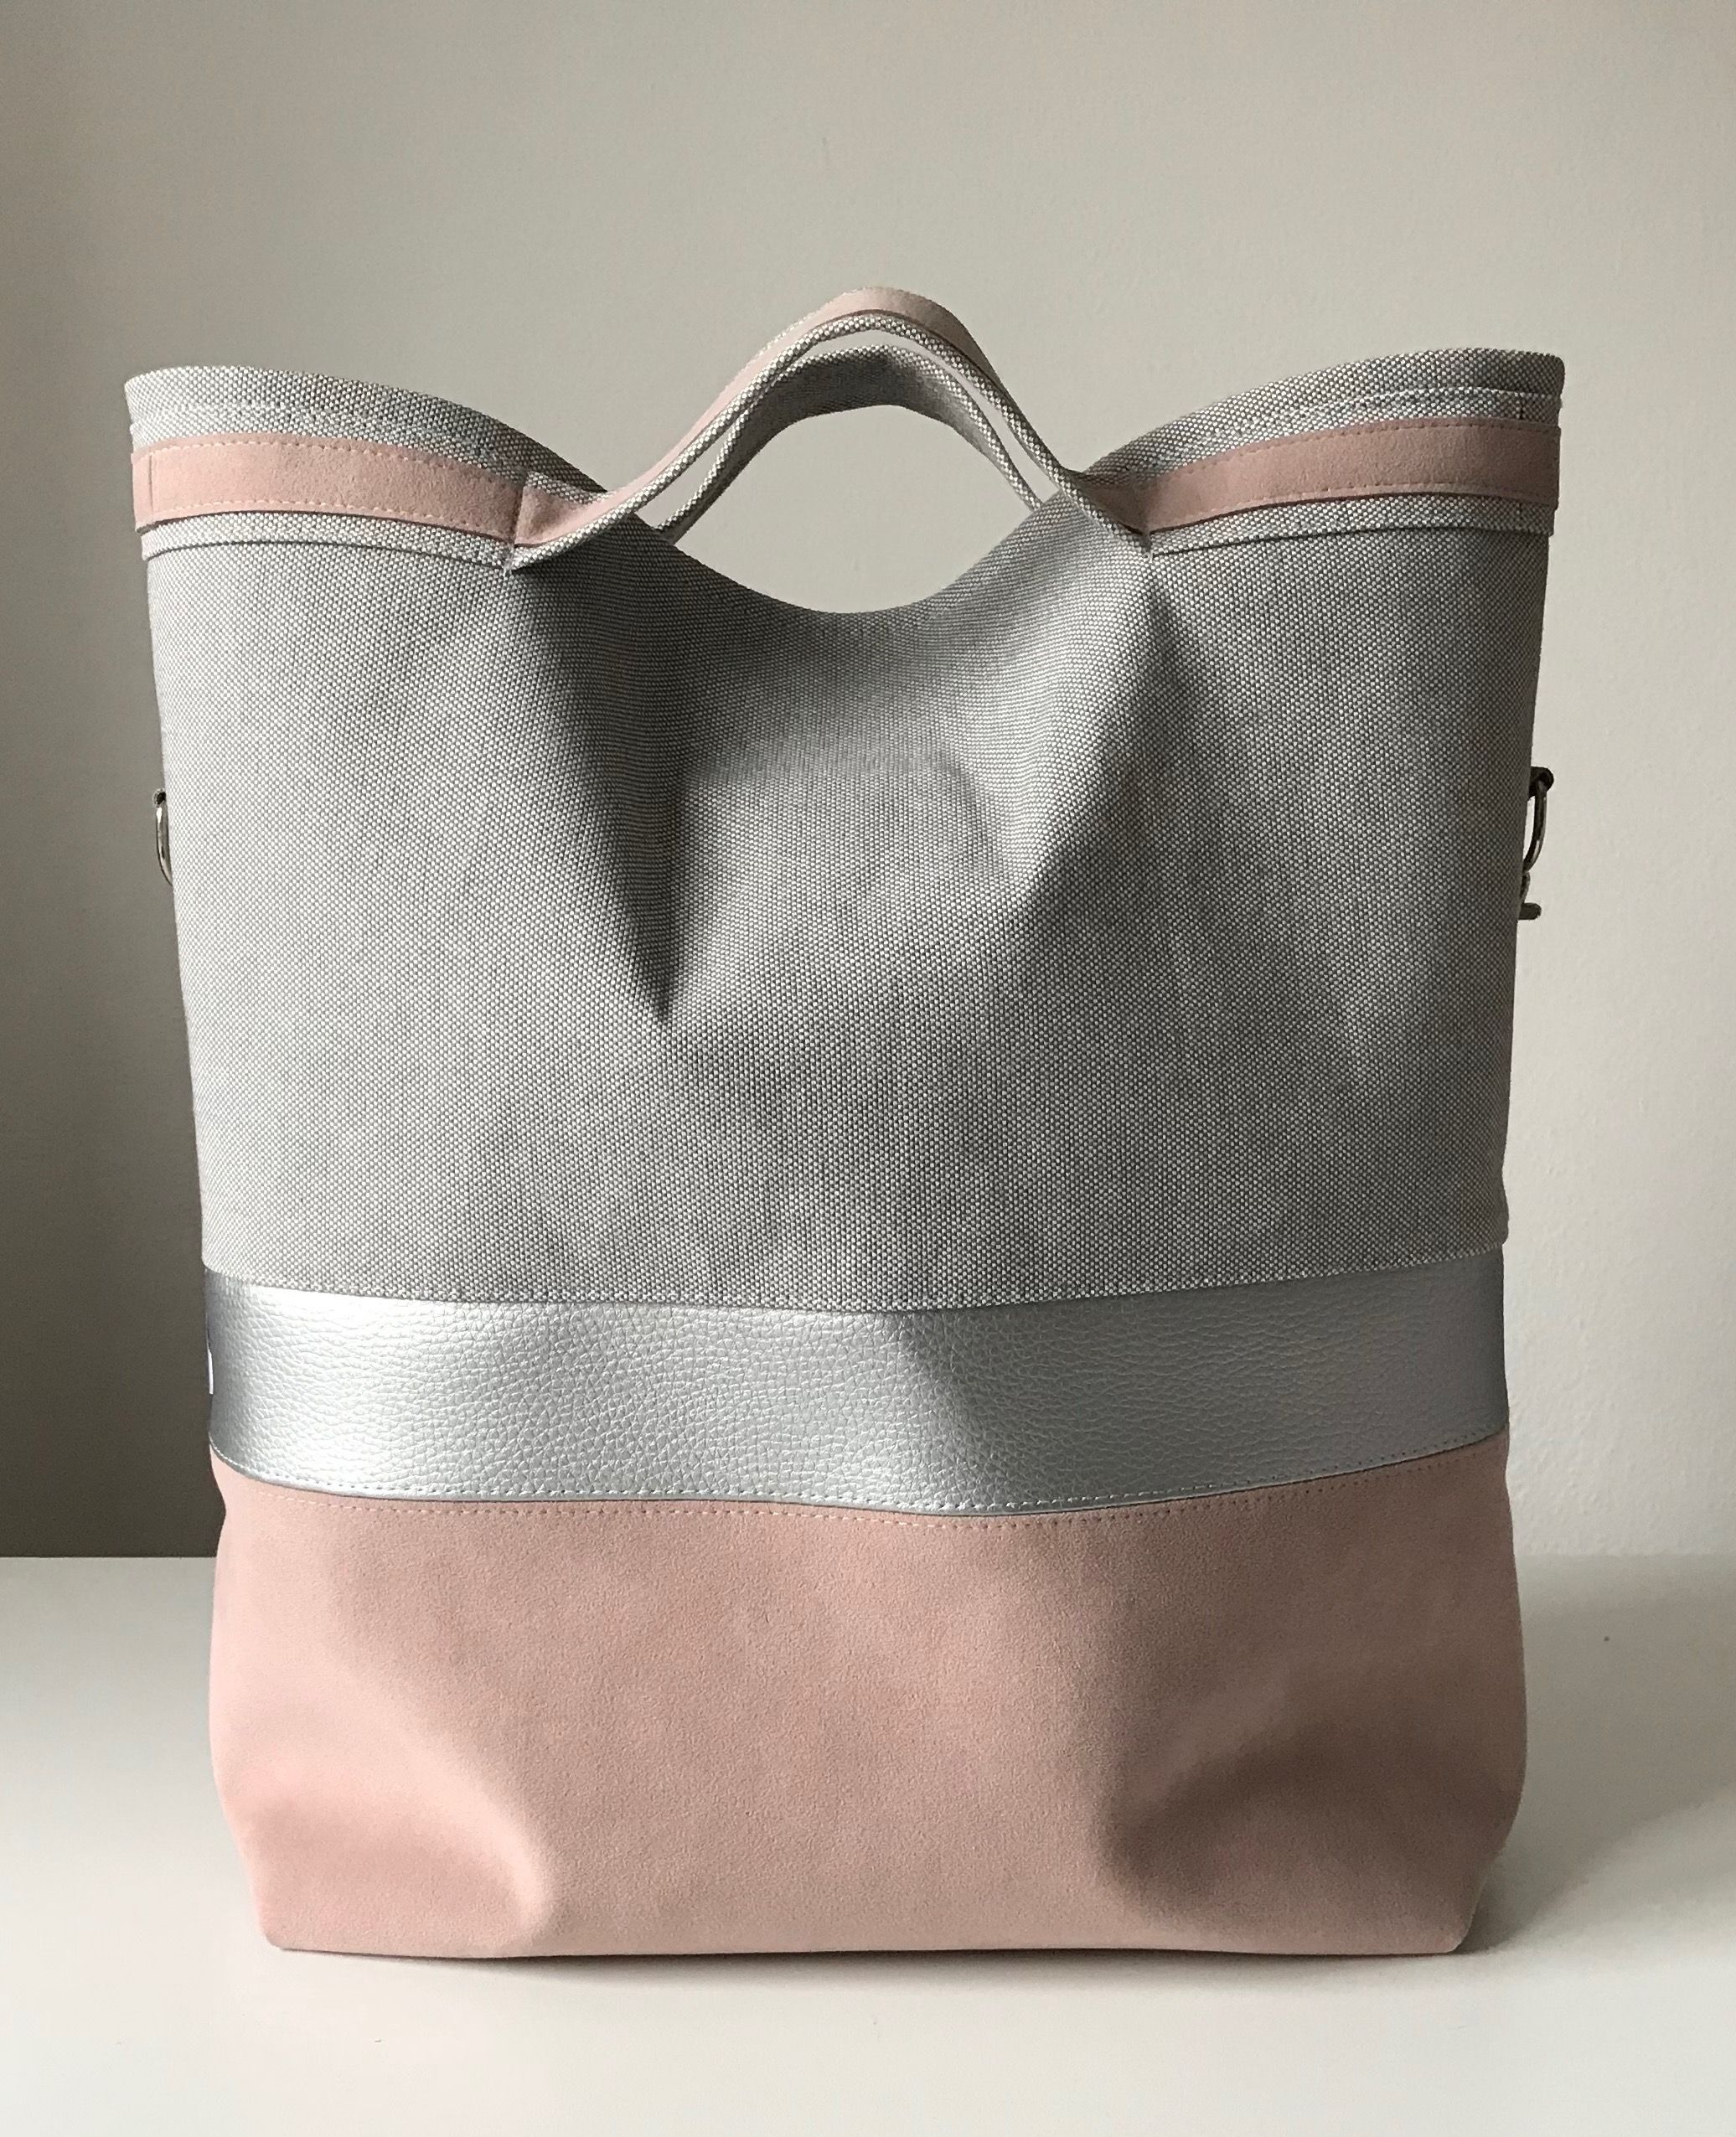 Shoulderbag, rose, silver, grey, 4 1, velur,. Find this Pin and more on Bags  ... 09f3fb9f27